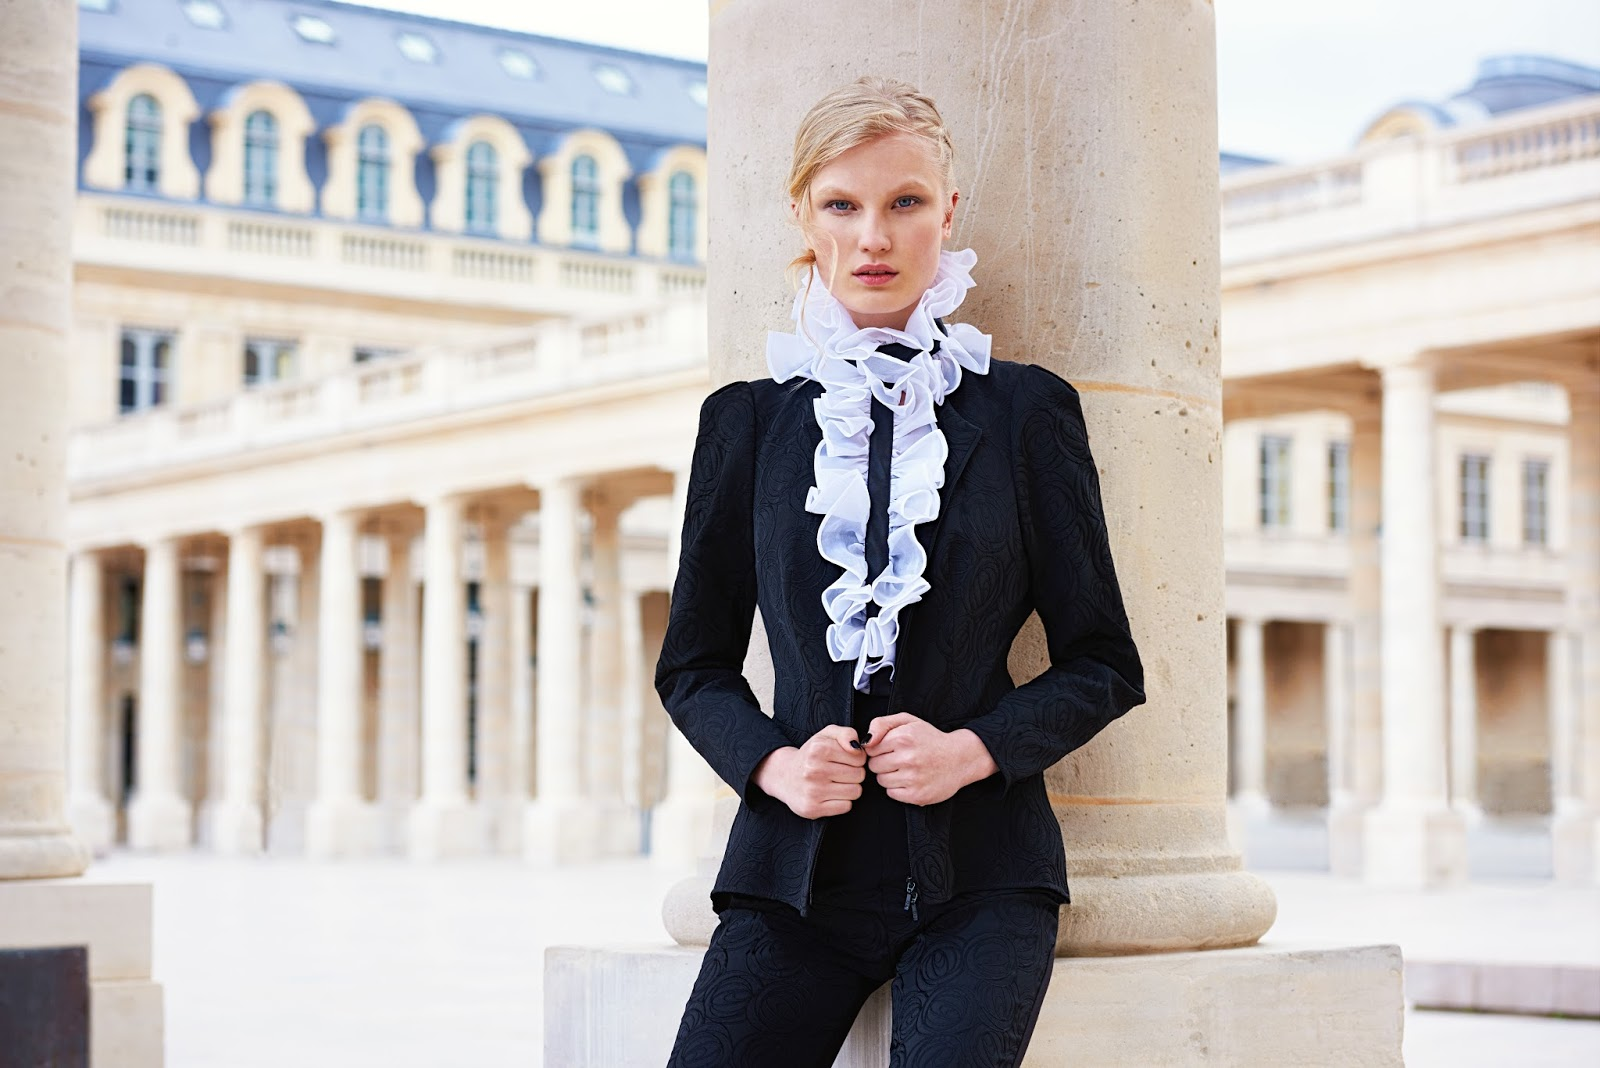 Anne Fontaine collection Automne-Hiver 2016-2017   DAME SKARLETTE 291dab07bf9